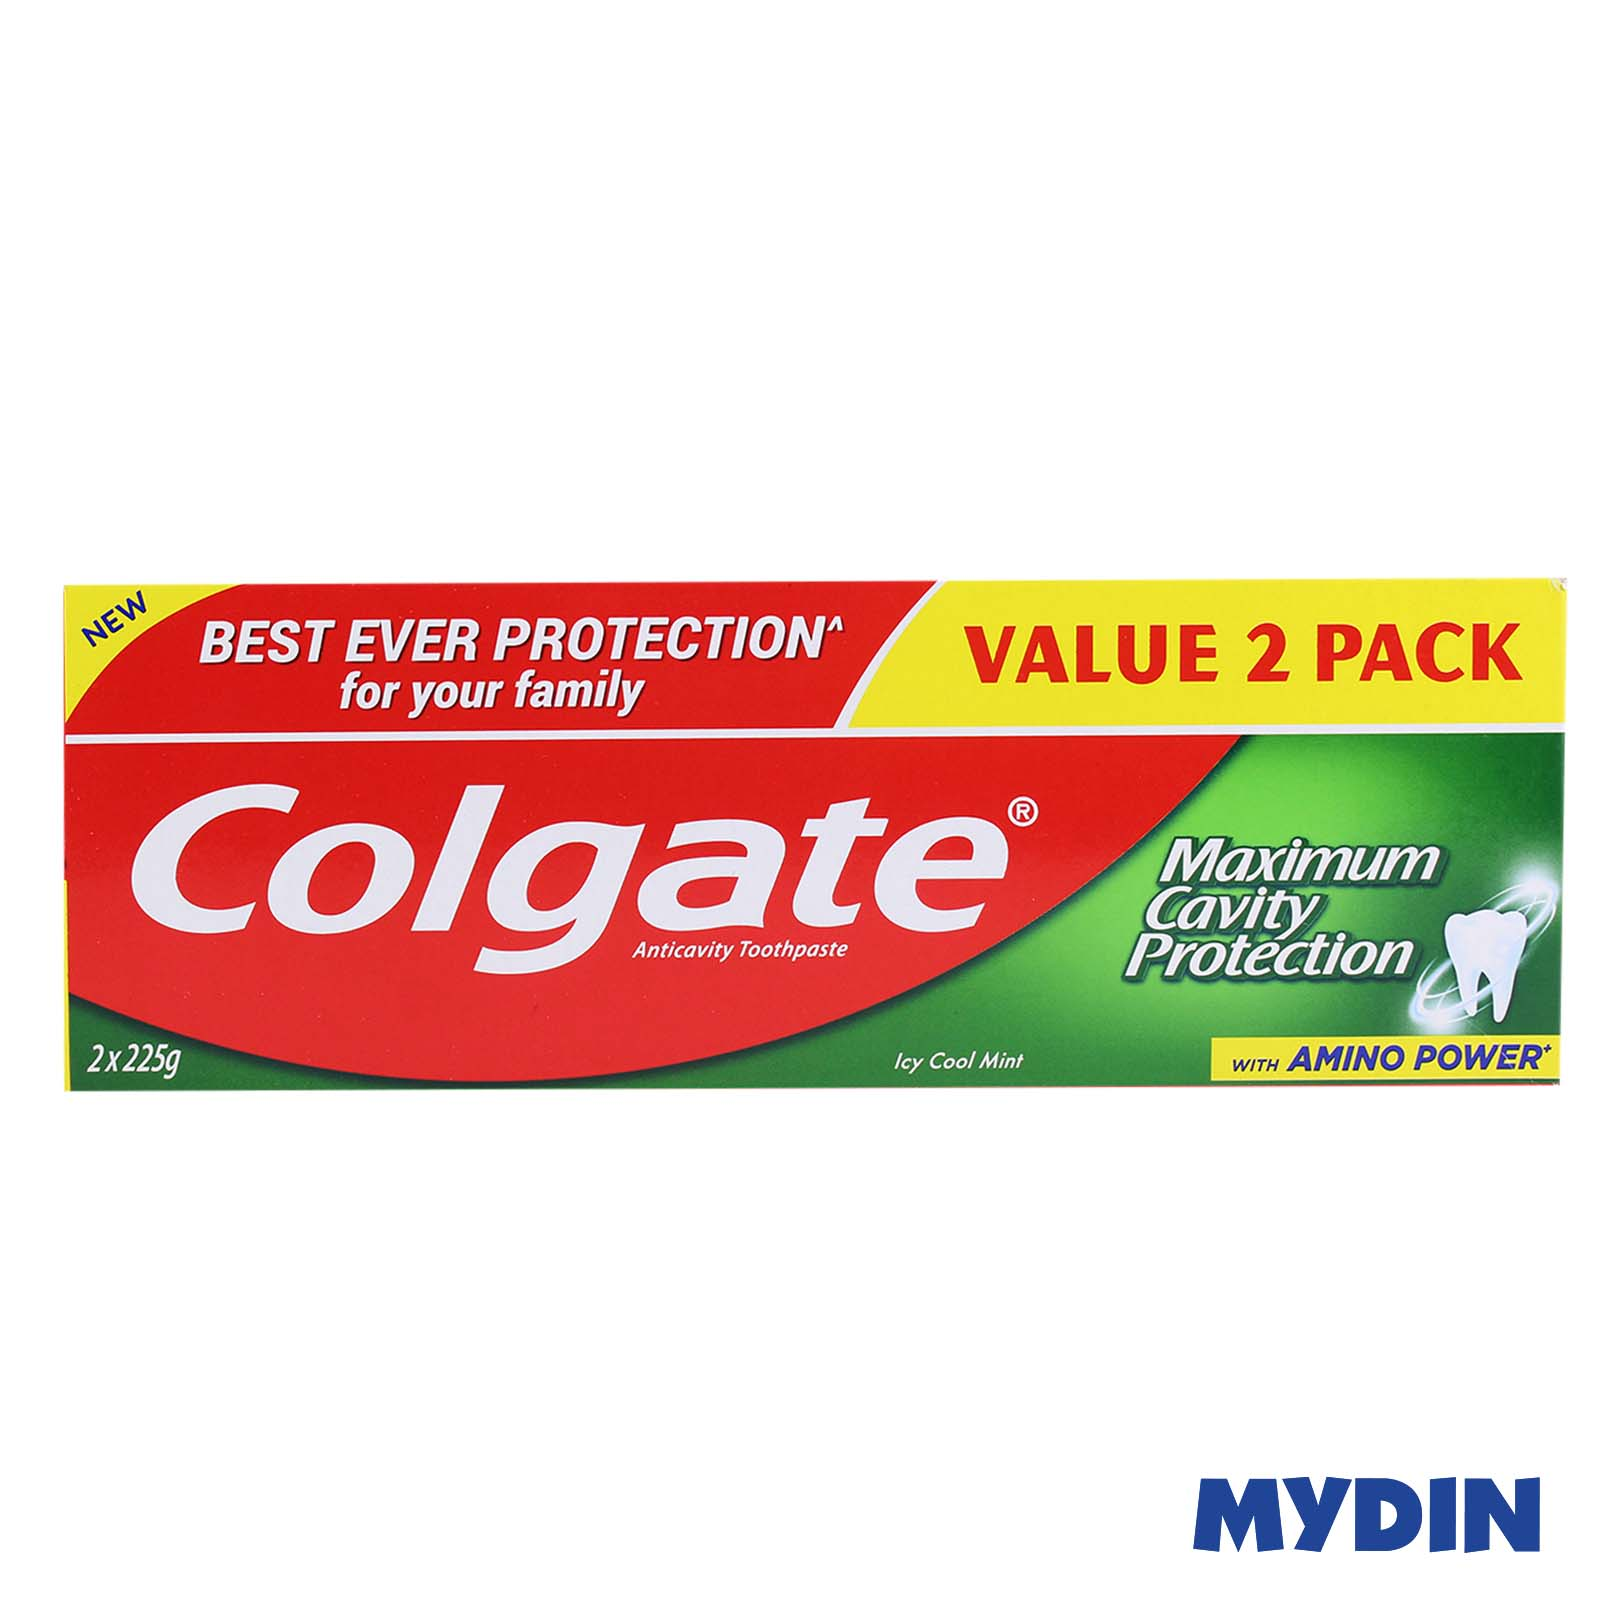 Colgate Anticavity Fluoride Toothpaste Icy Cool Mint (225g x 2)